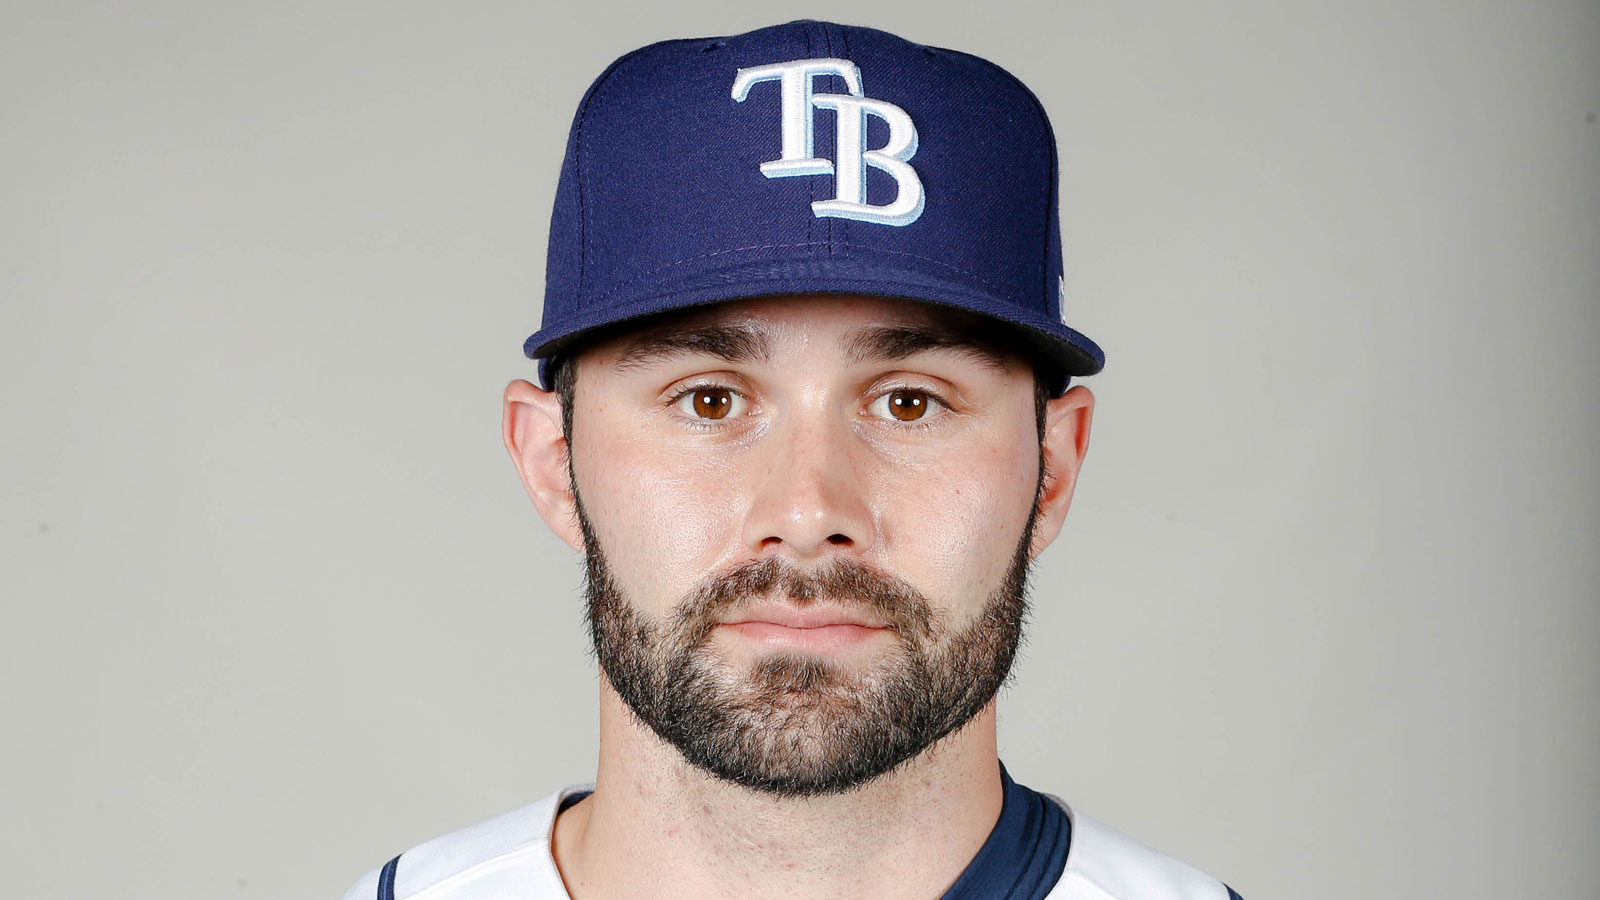 Rays trade catcher Anthony Bemboom to Angels for cash